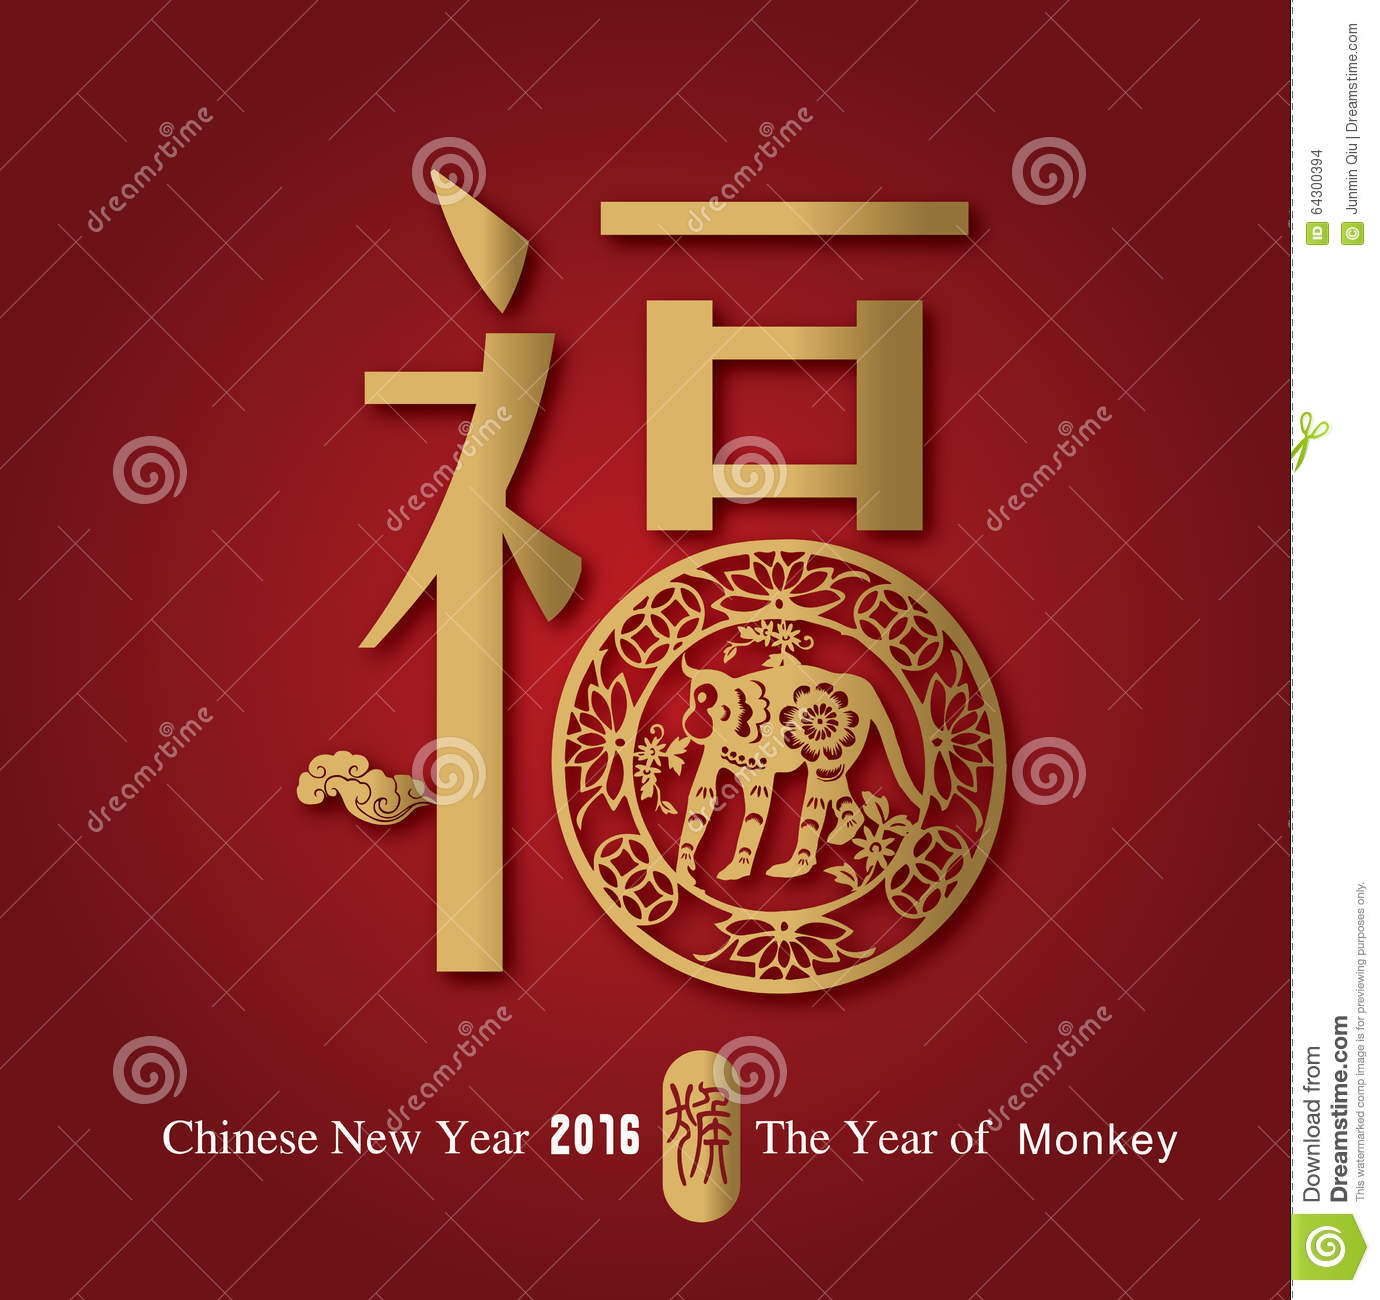 Stock Images: 2016, New Year, Lunar New Year, Year of the ...